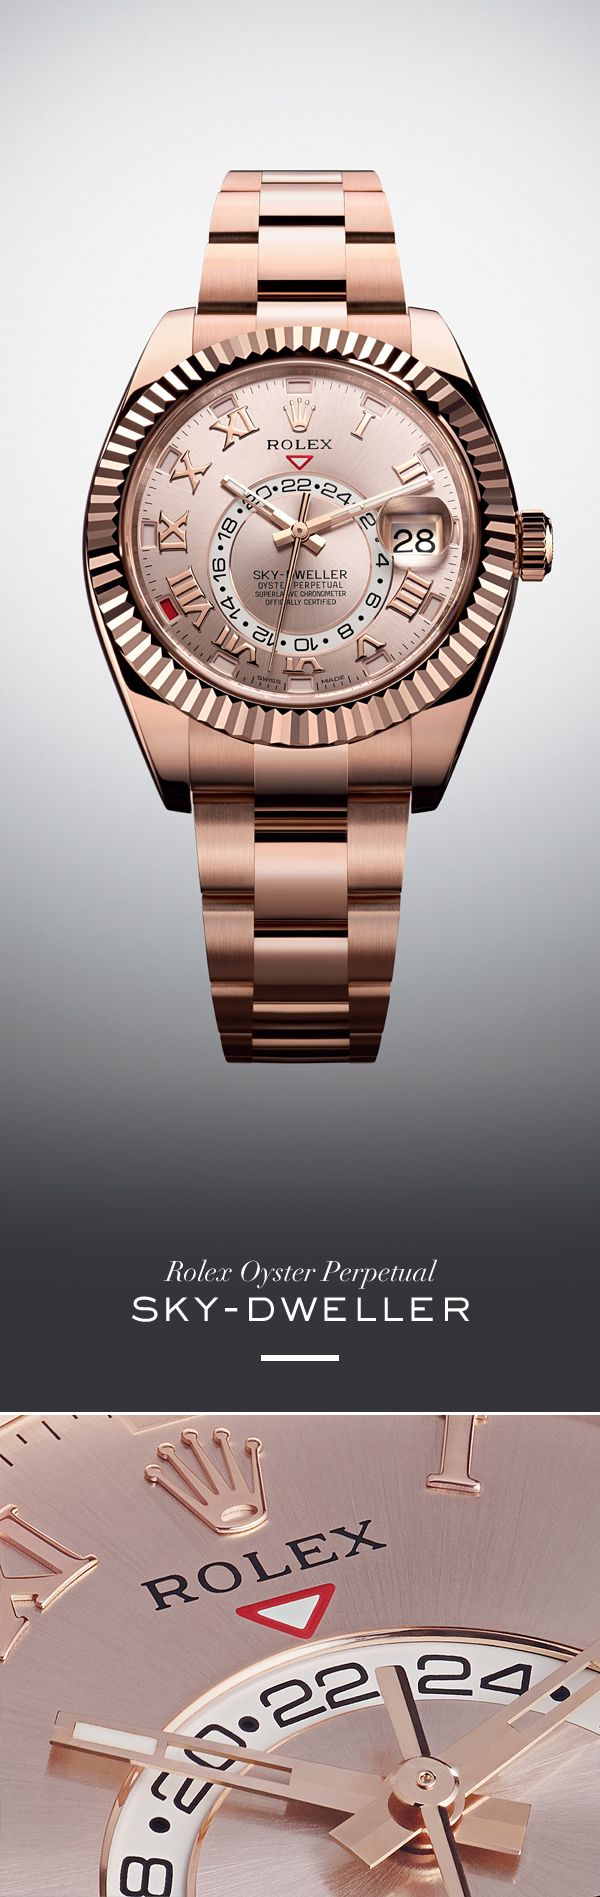 Rolex Sky-Dweller 42 mm in Everose with a Sundust, sunray finish dial and Oyster Bracelet. #RolexOfficial